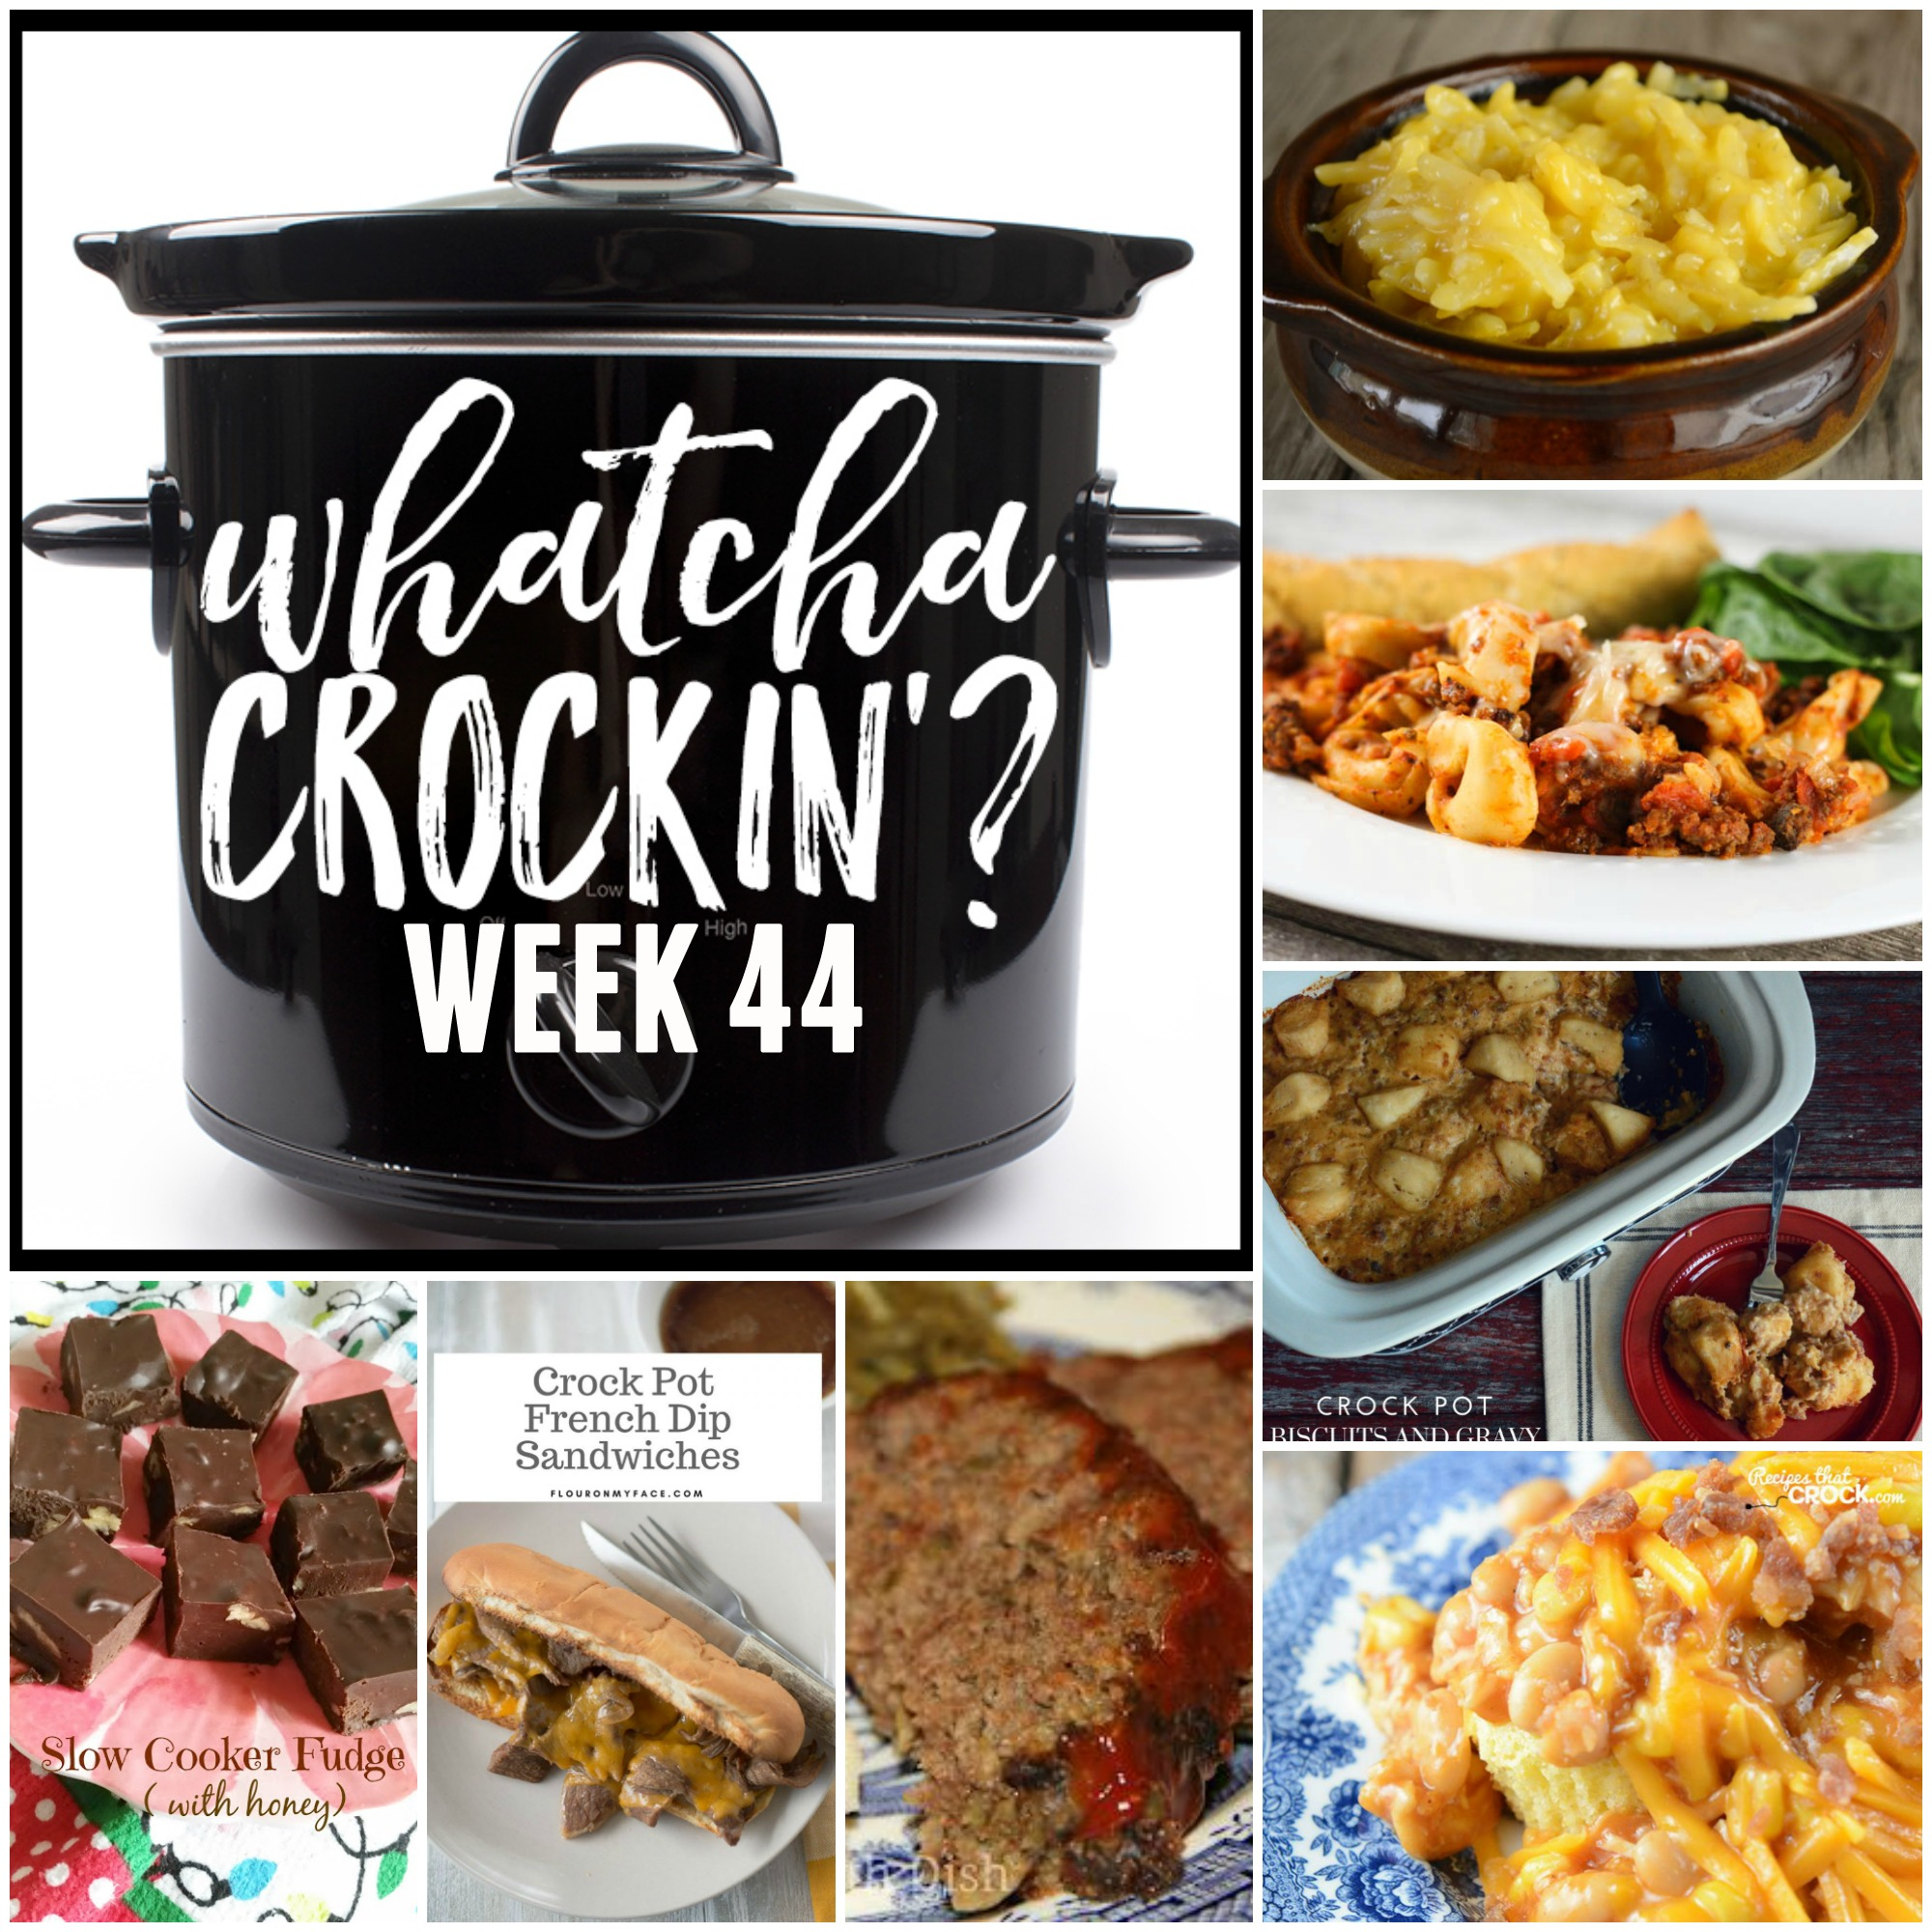 This week's Whatcha Crockin' crock pot recipes are all about comfort food, including Crock Pot Meatloaf, Cheesy Crock Pot Tortellini Casserole, 4 Ingredient Crock Pot Cheesy Potatoes, Crock Pot Biscuits and Gravy Casserole, Crock Pot Cheesy Chicken Chowdown, Slow Cooker Fudge Made with Honey, Crock Pot French Dip, Instant Pot Goulash and many more!